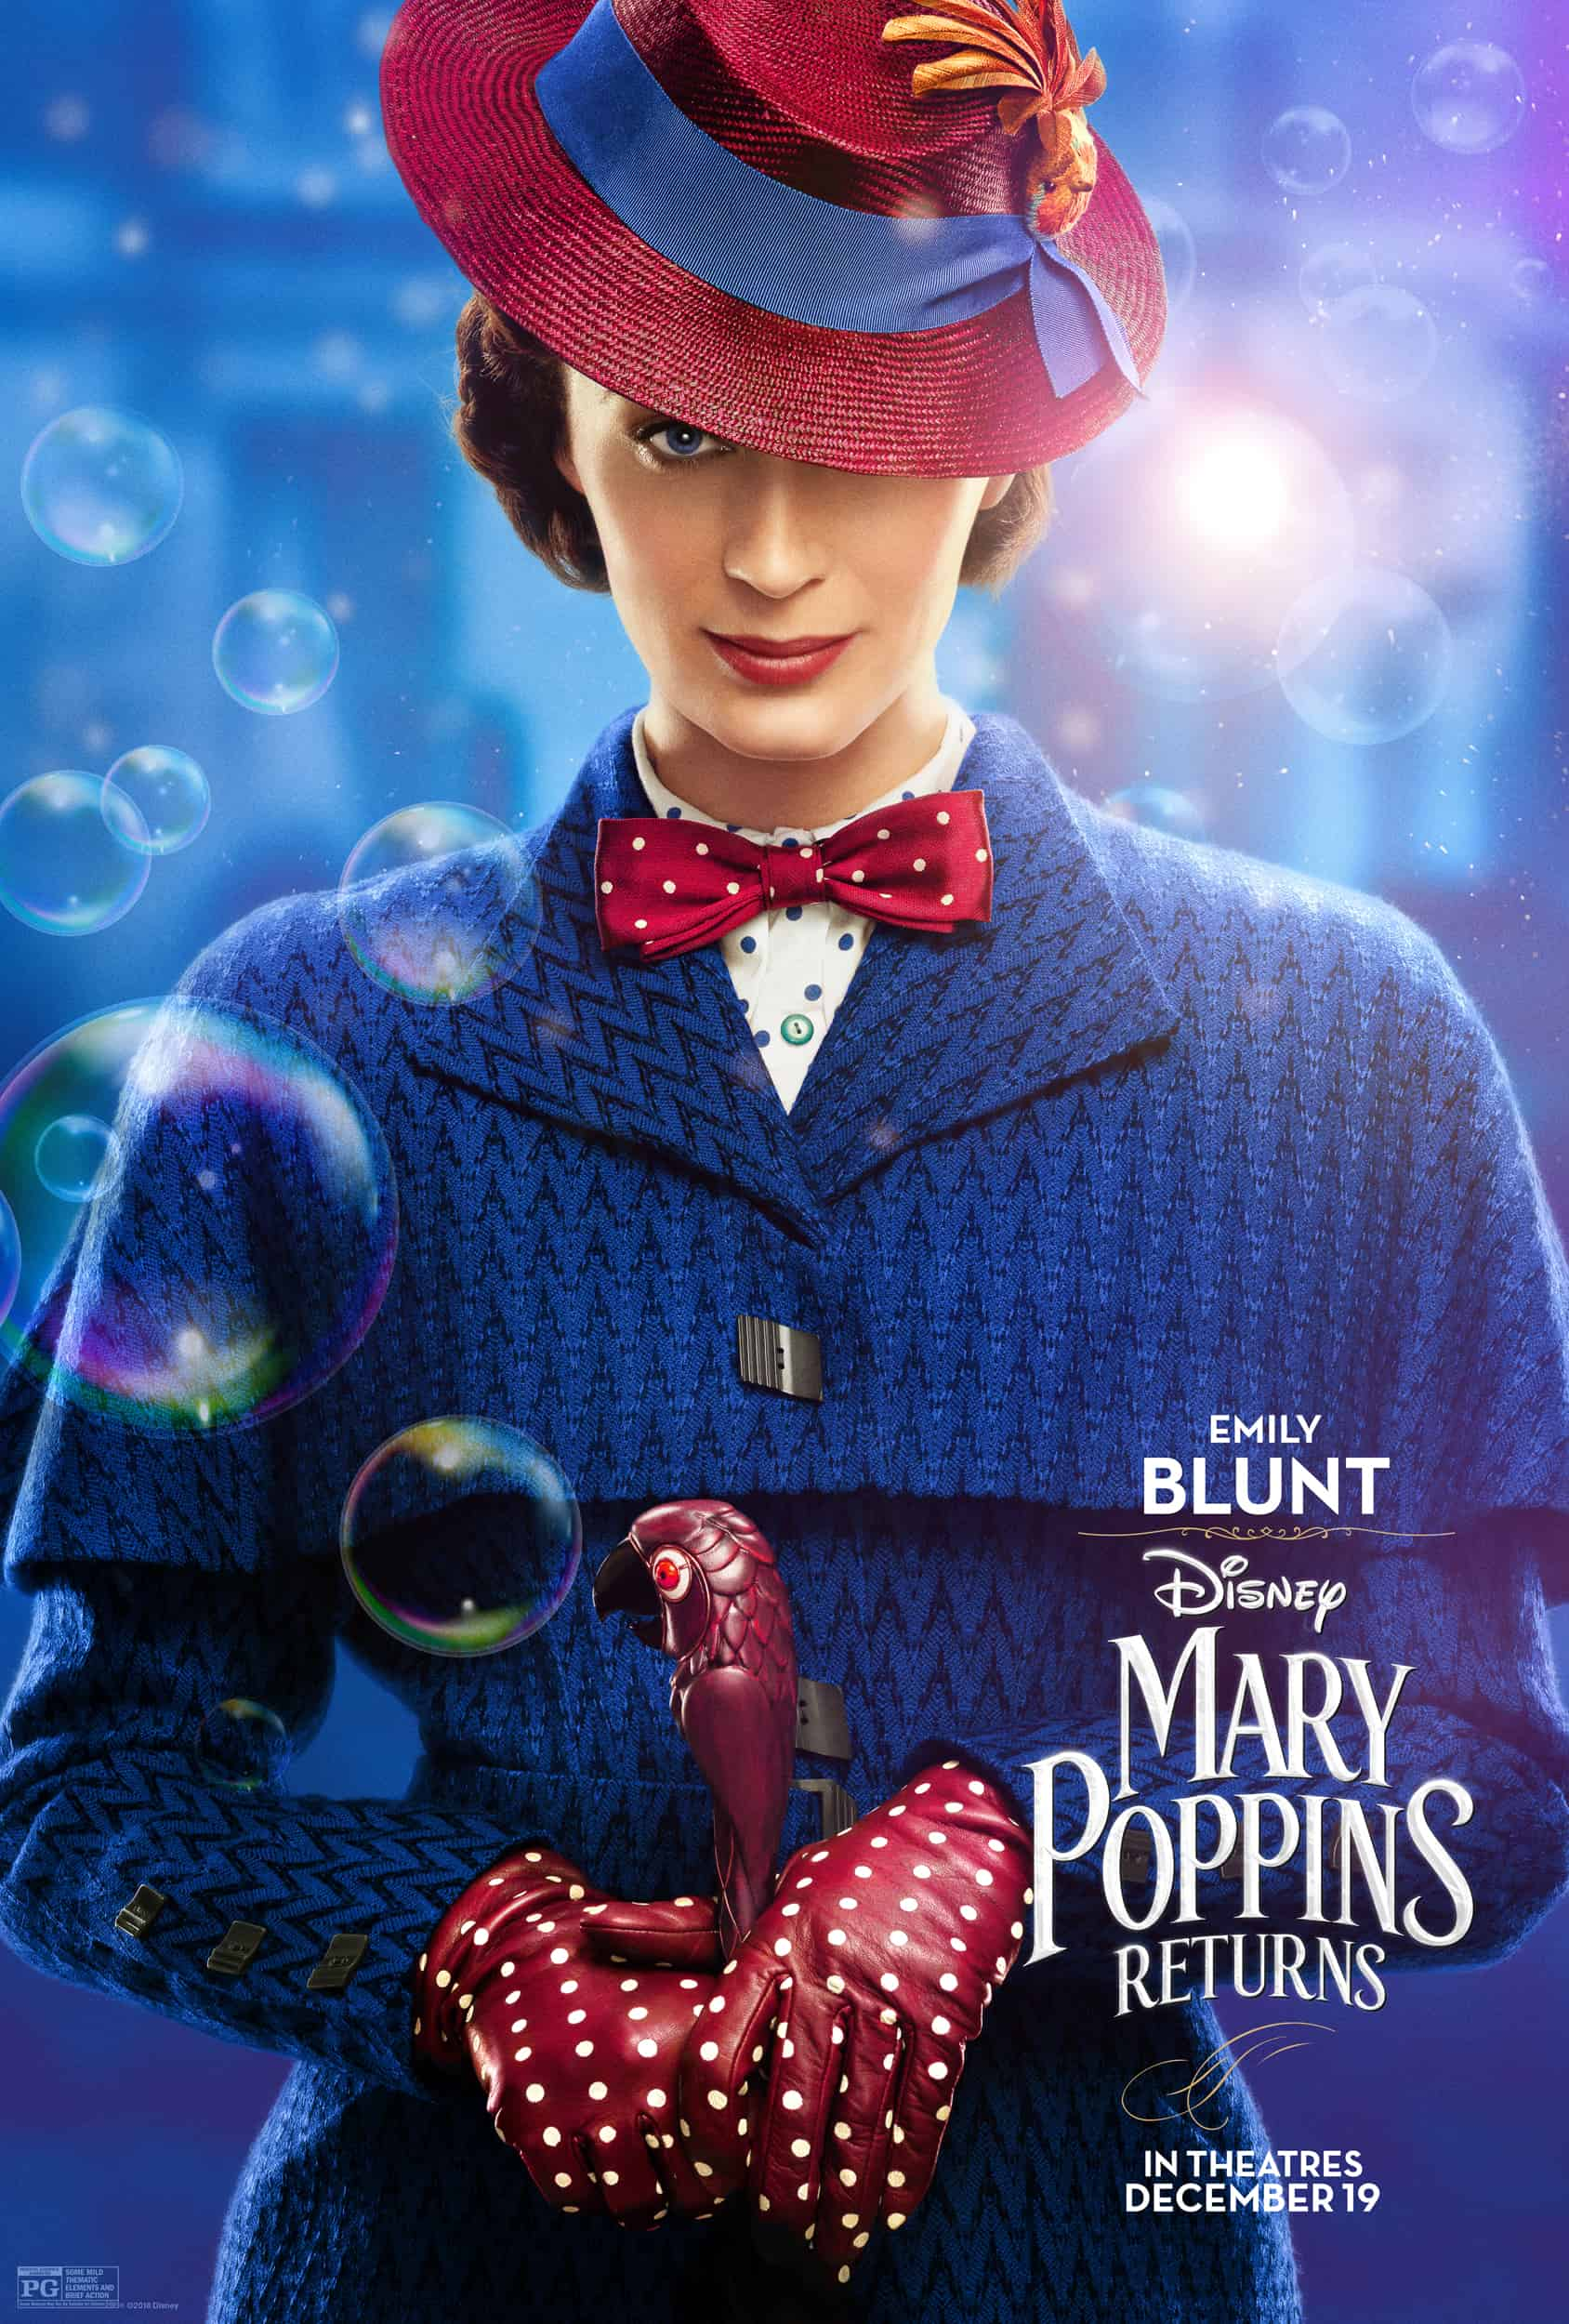 Mary Poppins Returns in theaters on December 19th